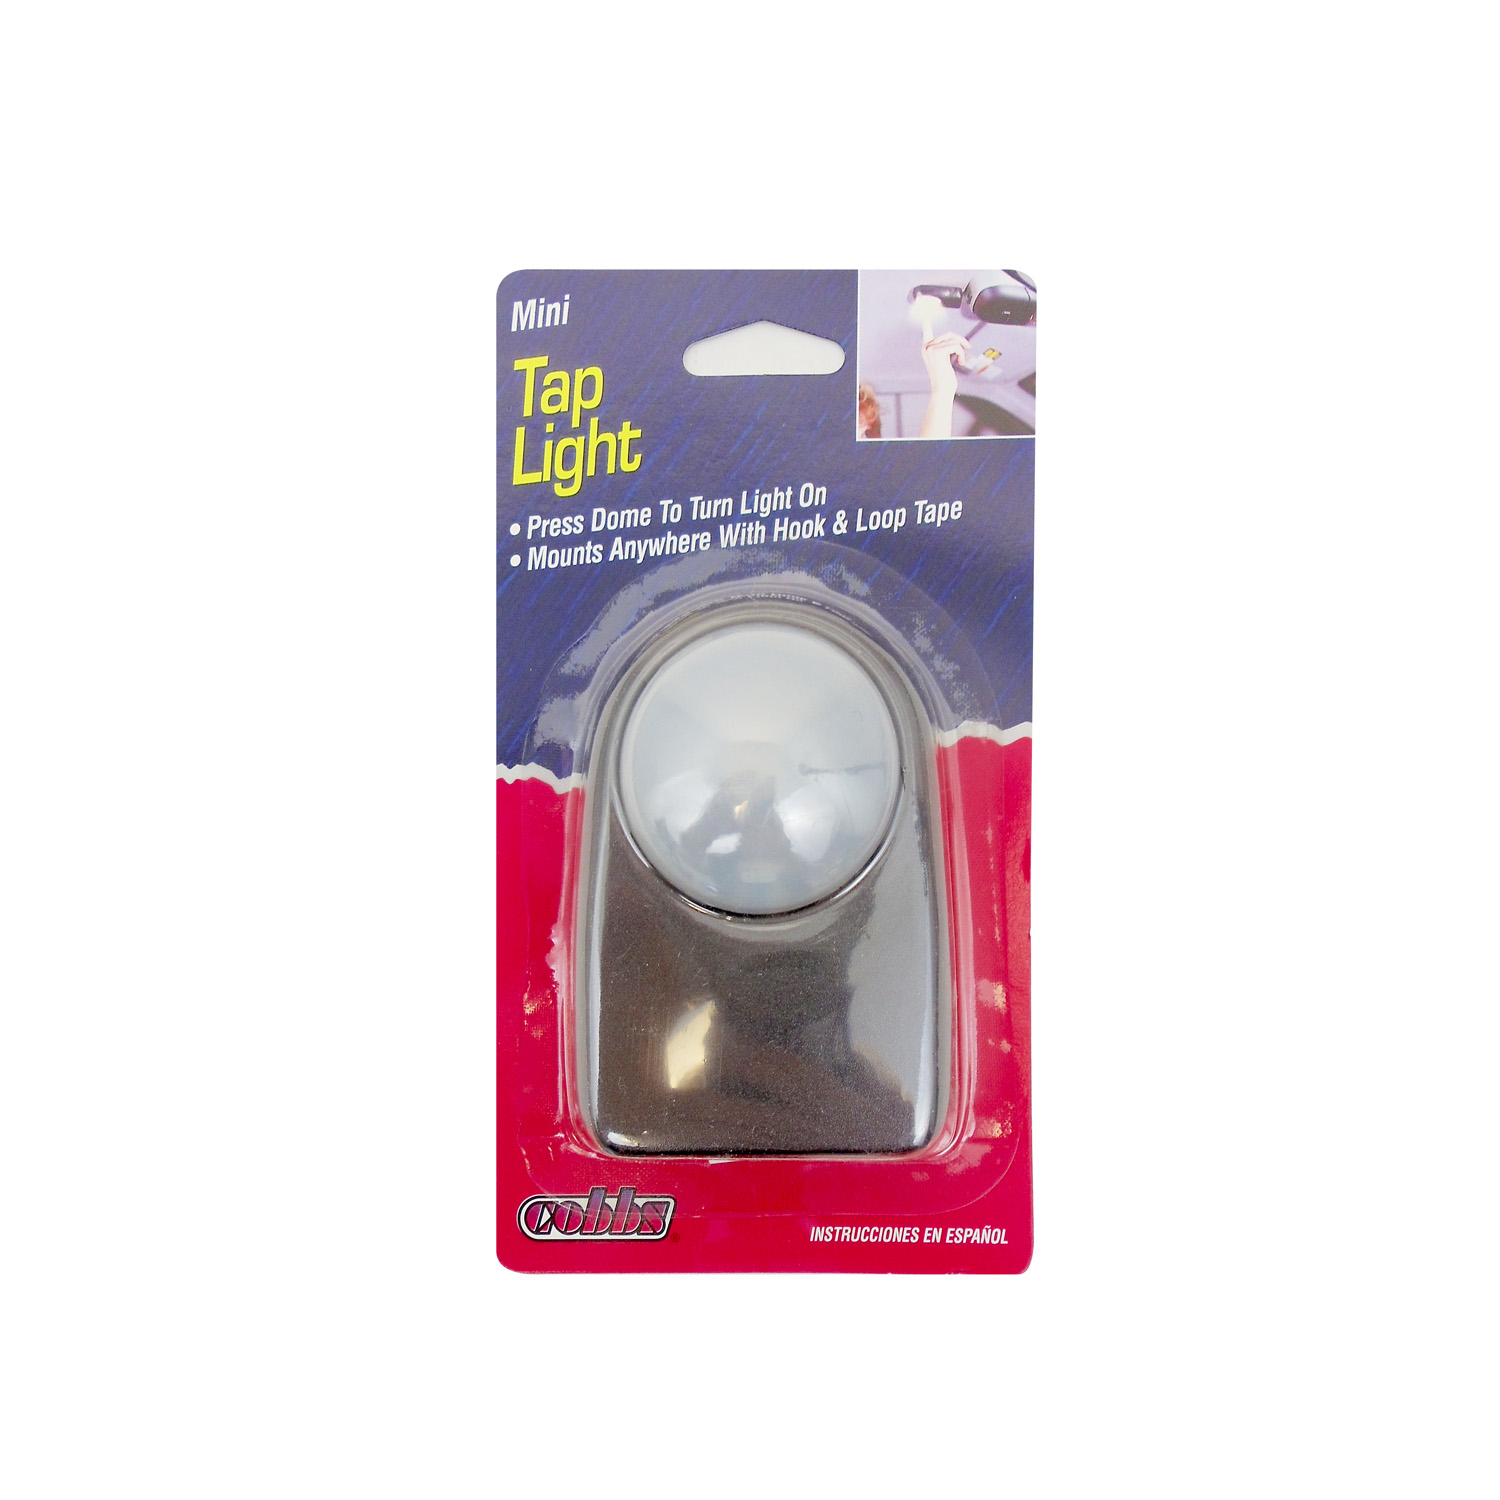 COBBS - MINI TAP LIGHT - PRESS DOME TO TURN ON & OFF, MOUNTS WITH HOOK & LOOP TAPE